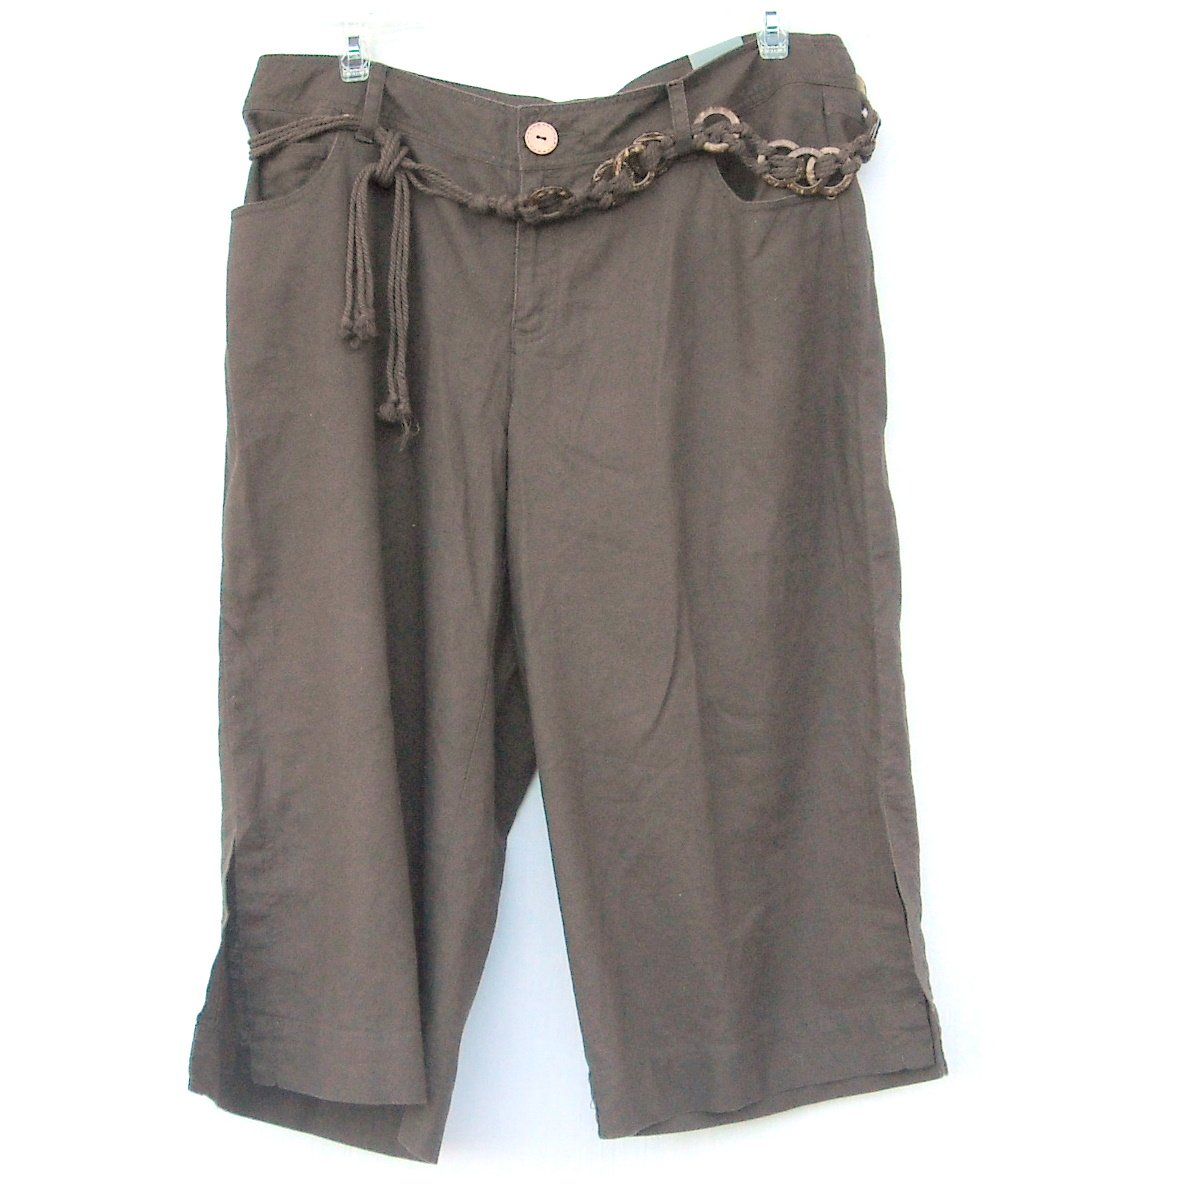 Lane Bryant Venezia womens Brown Capri pants size 18